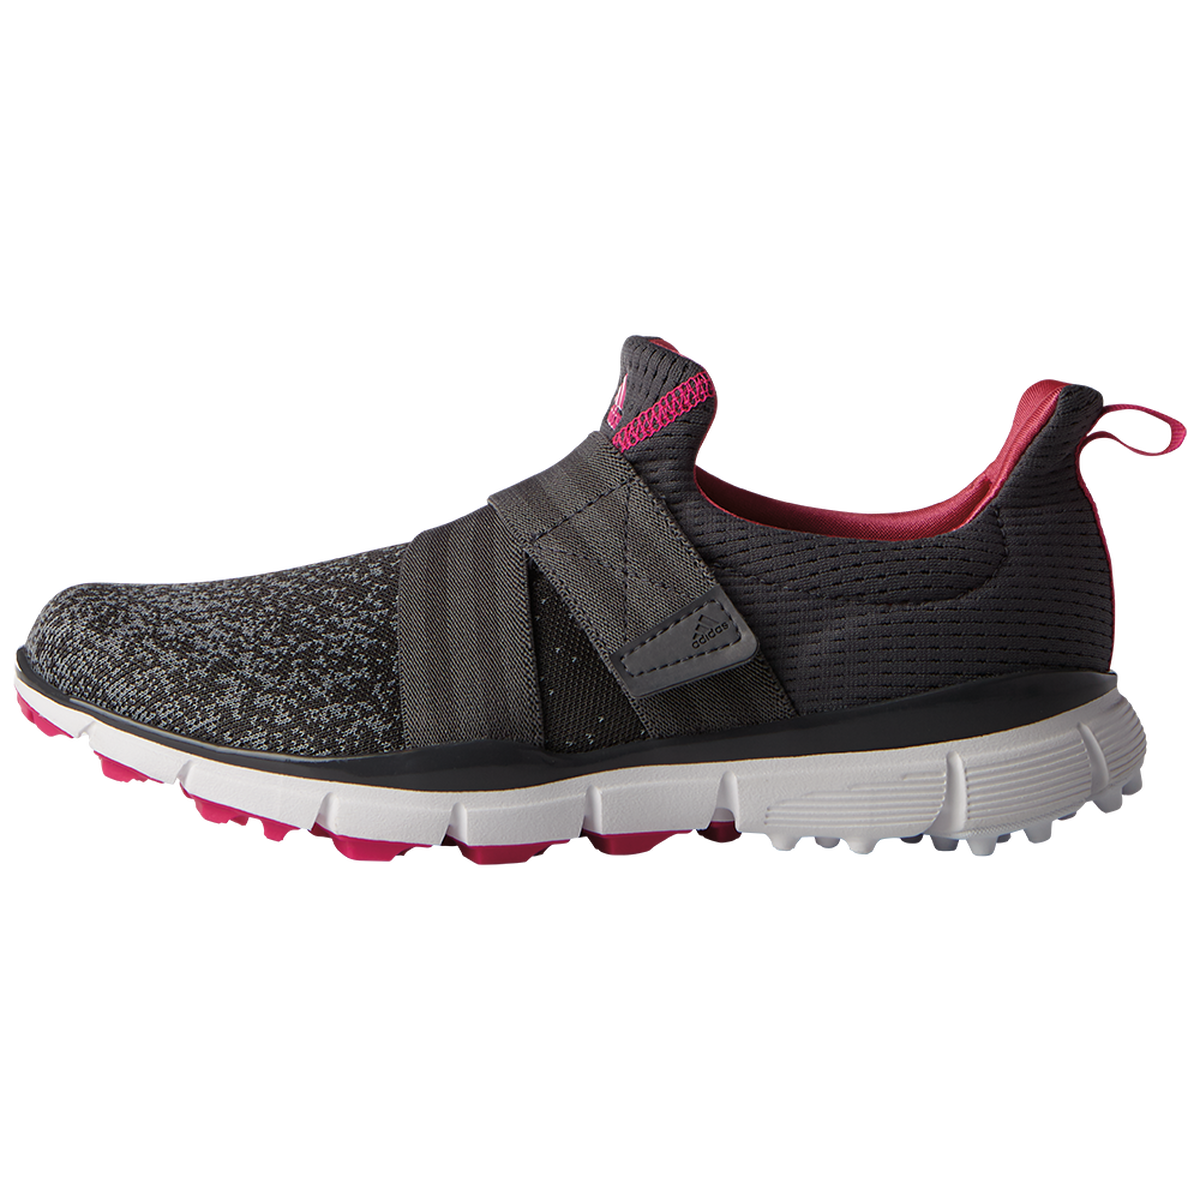 9c24ad31f7d9 adidas Climacool Knit Women s Golf Shoe - Grey